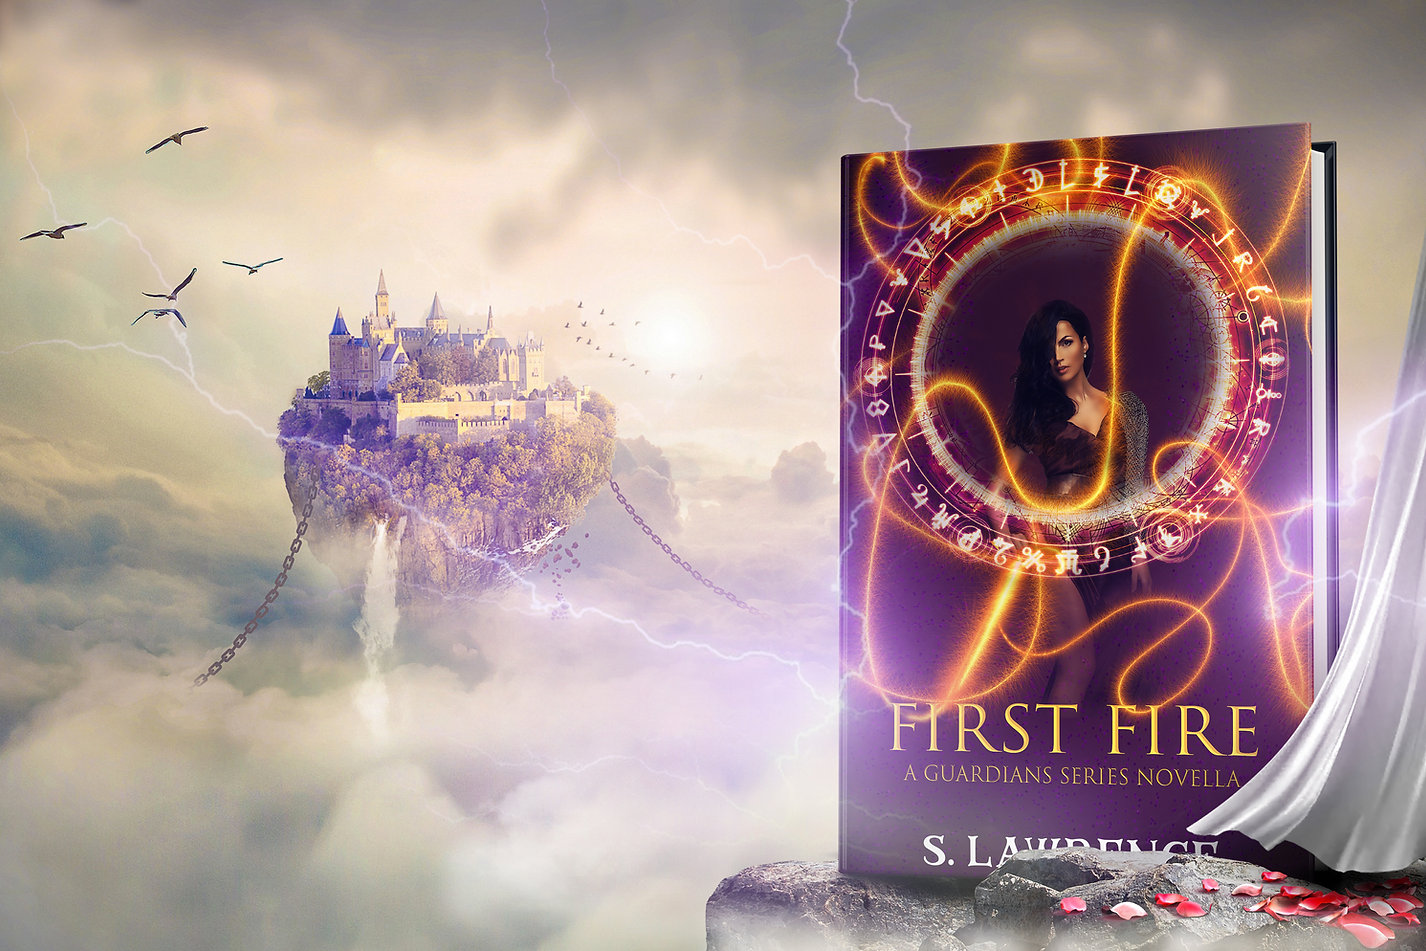 088-6x9-Fantasy-Hardcover-Book-Mockup-CO